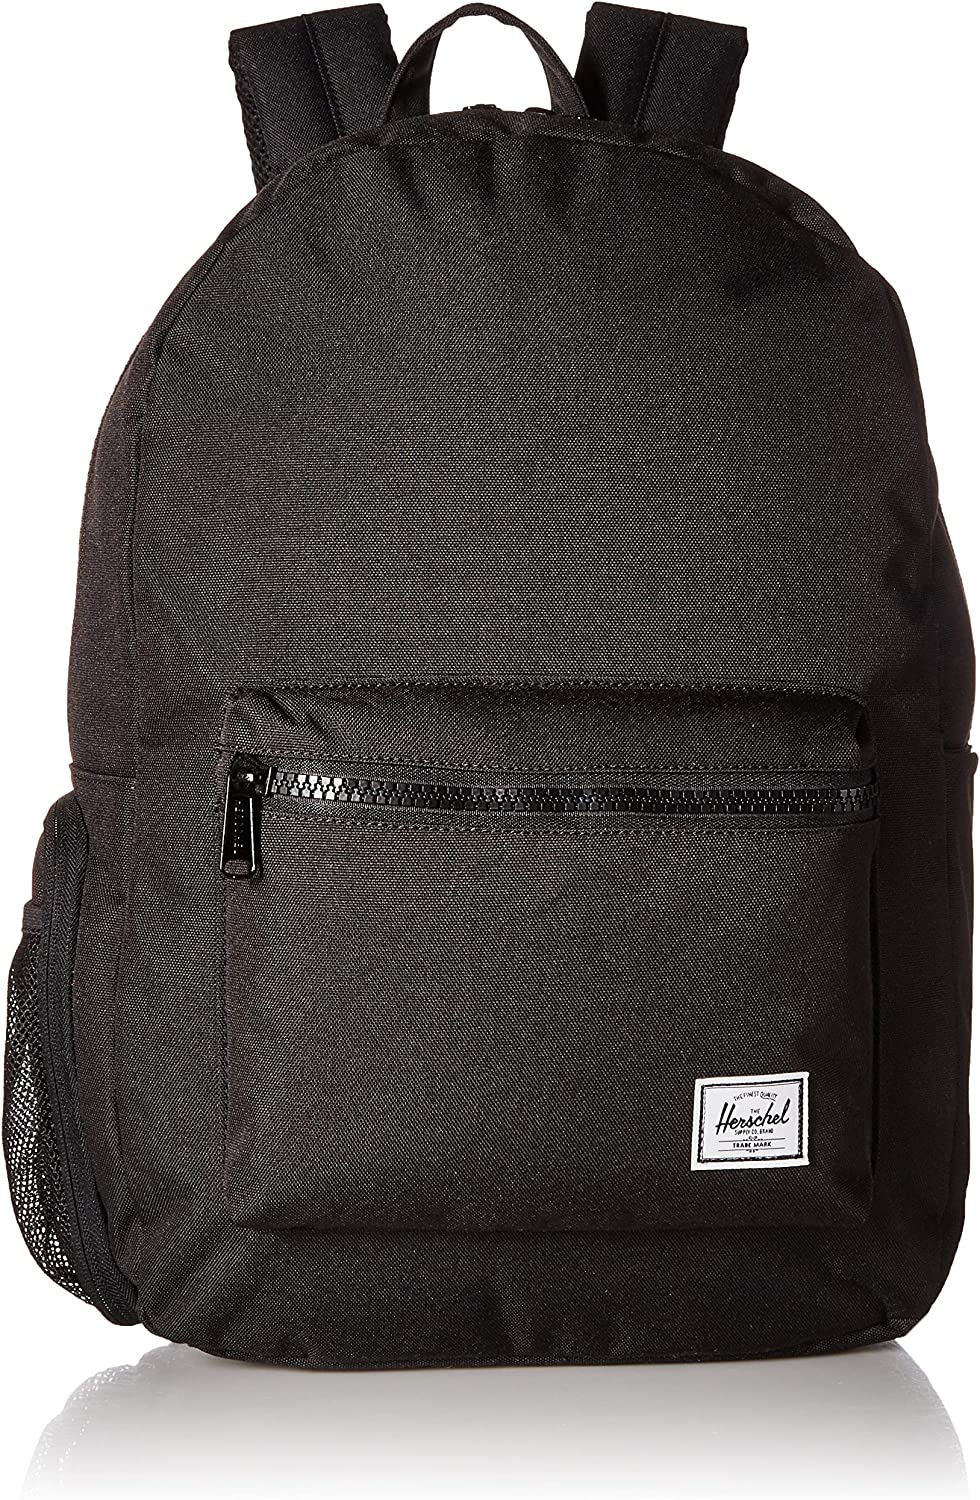 Herschel Baby Settlement Sprout Backpack, Black, One Size